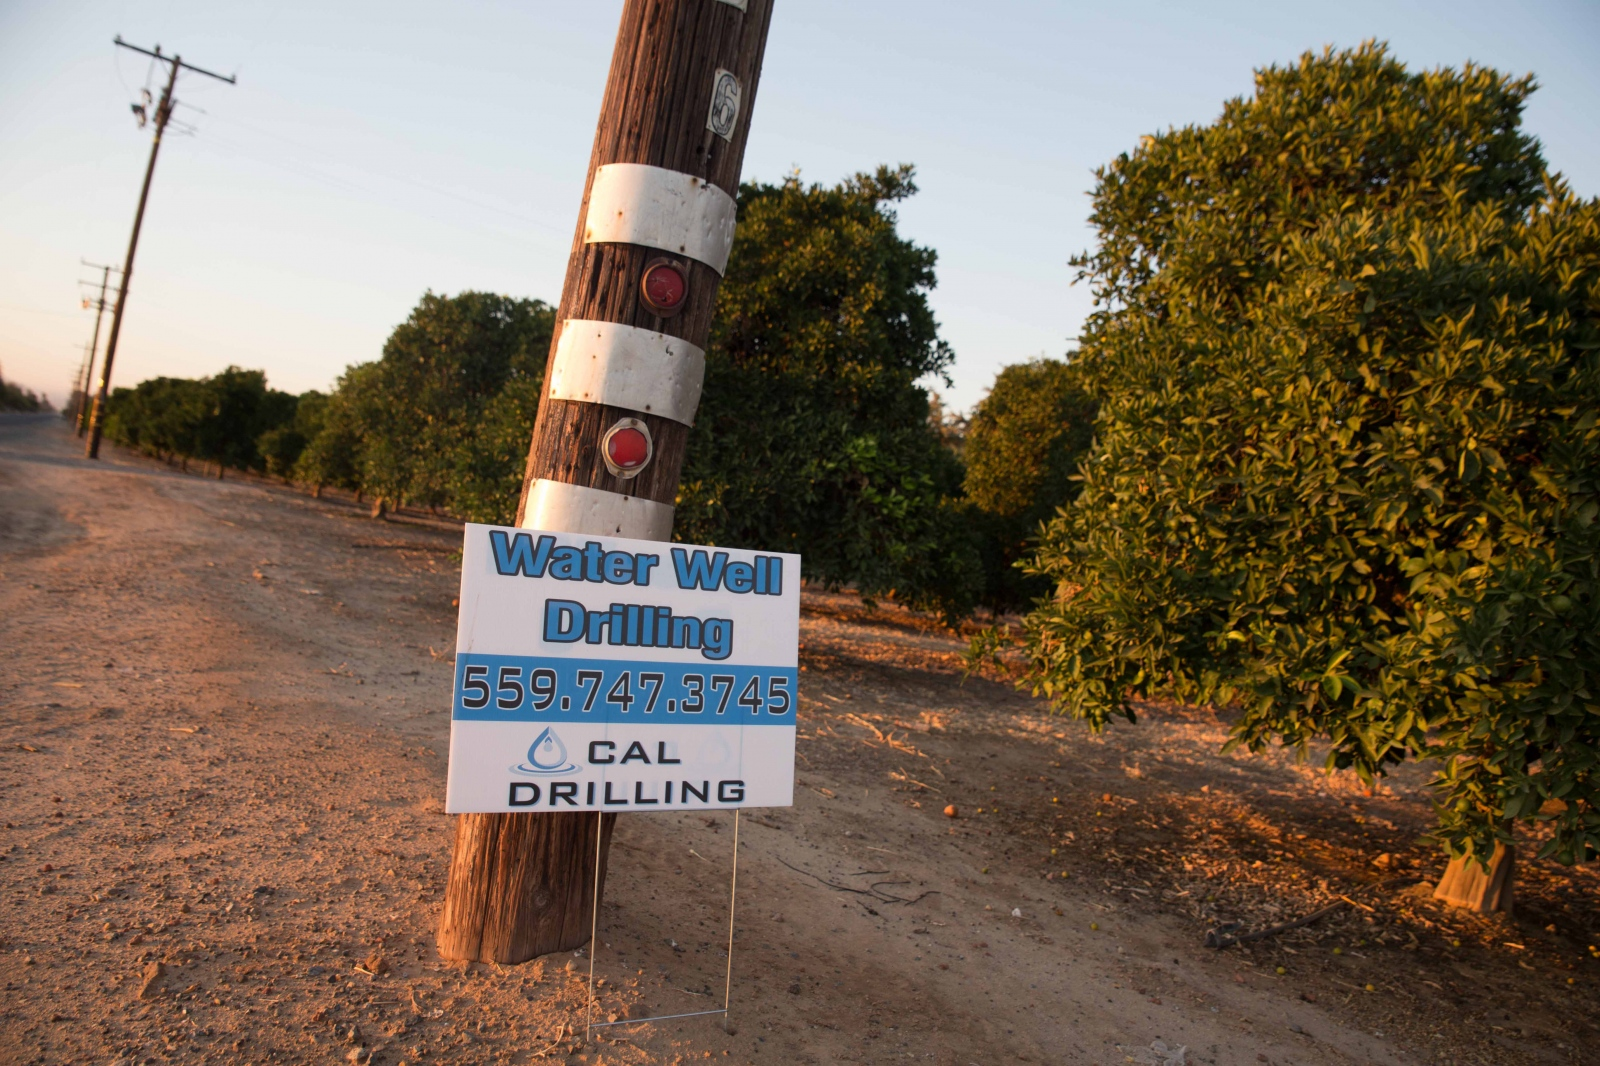 Signs that advertise companies that drill water wells are scattered throughout towns and fields in the Central Valley. Over 5,000 new wells have been drilled in Tulare County - the epicenter for the drought - this past year, but at the same time about 2,000 wells have failed. June 2016.